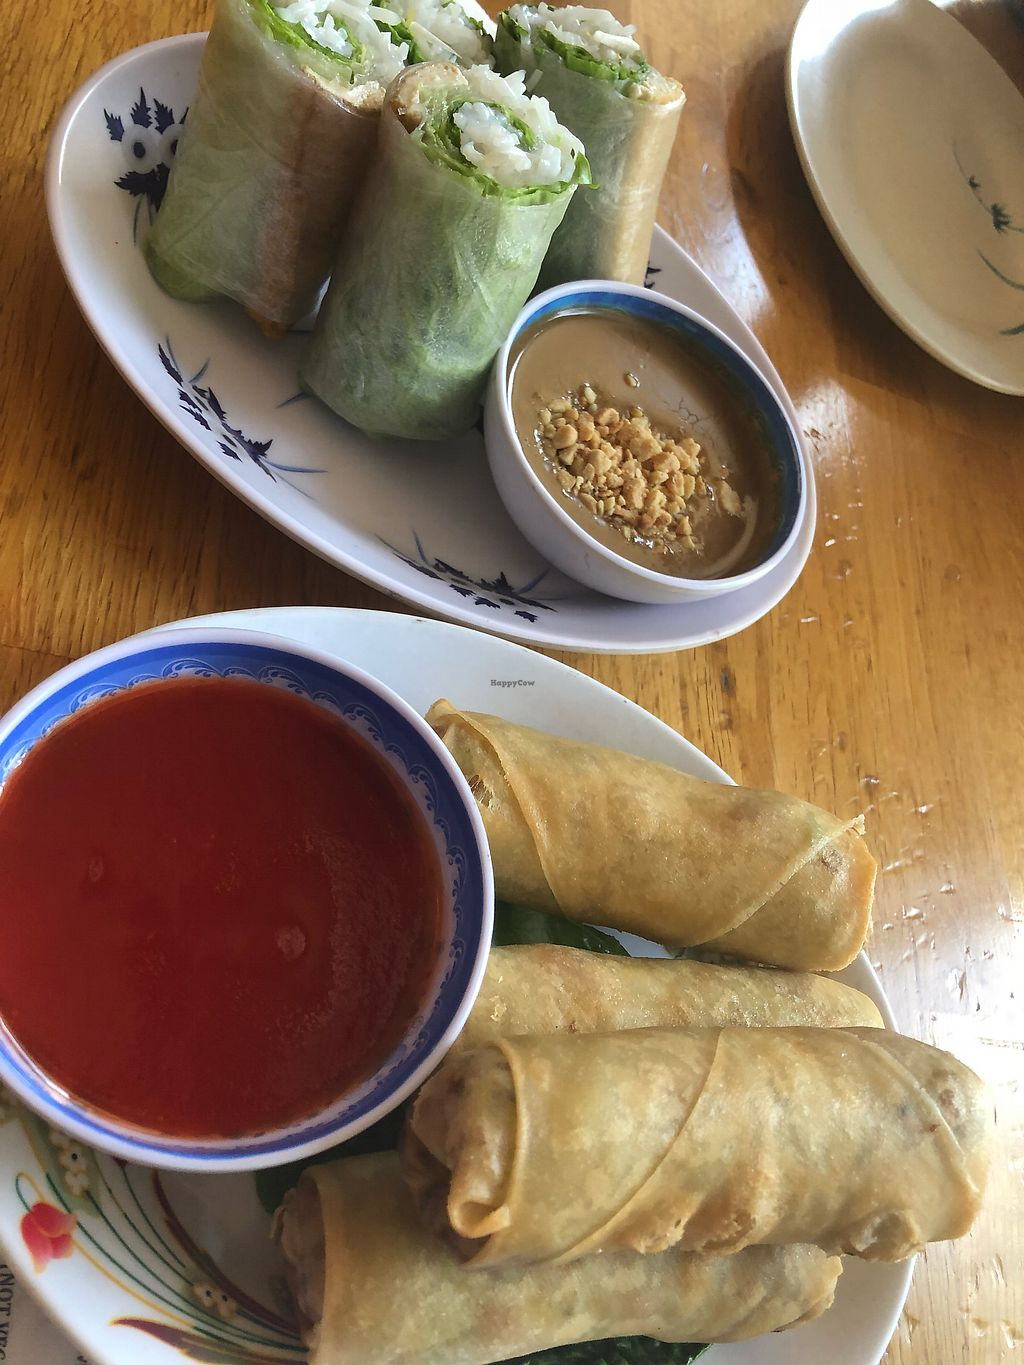 """Photo of Sipz Fusion Cafe - North Park  by <a href=""""/members/profile/Melynavarro"""">Melynavarro</a> <br/>Crunchy and fresh spring rolls  <br/> February 19, 2018  - <a href='/contact/abuse/image/29432/361094'>Report</a>"""